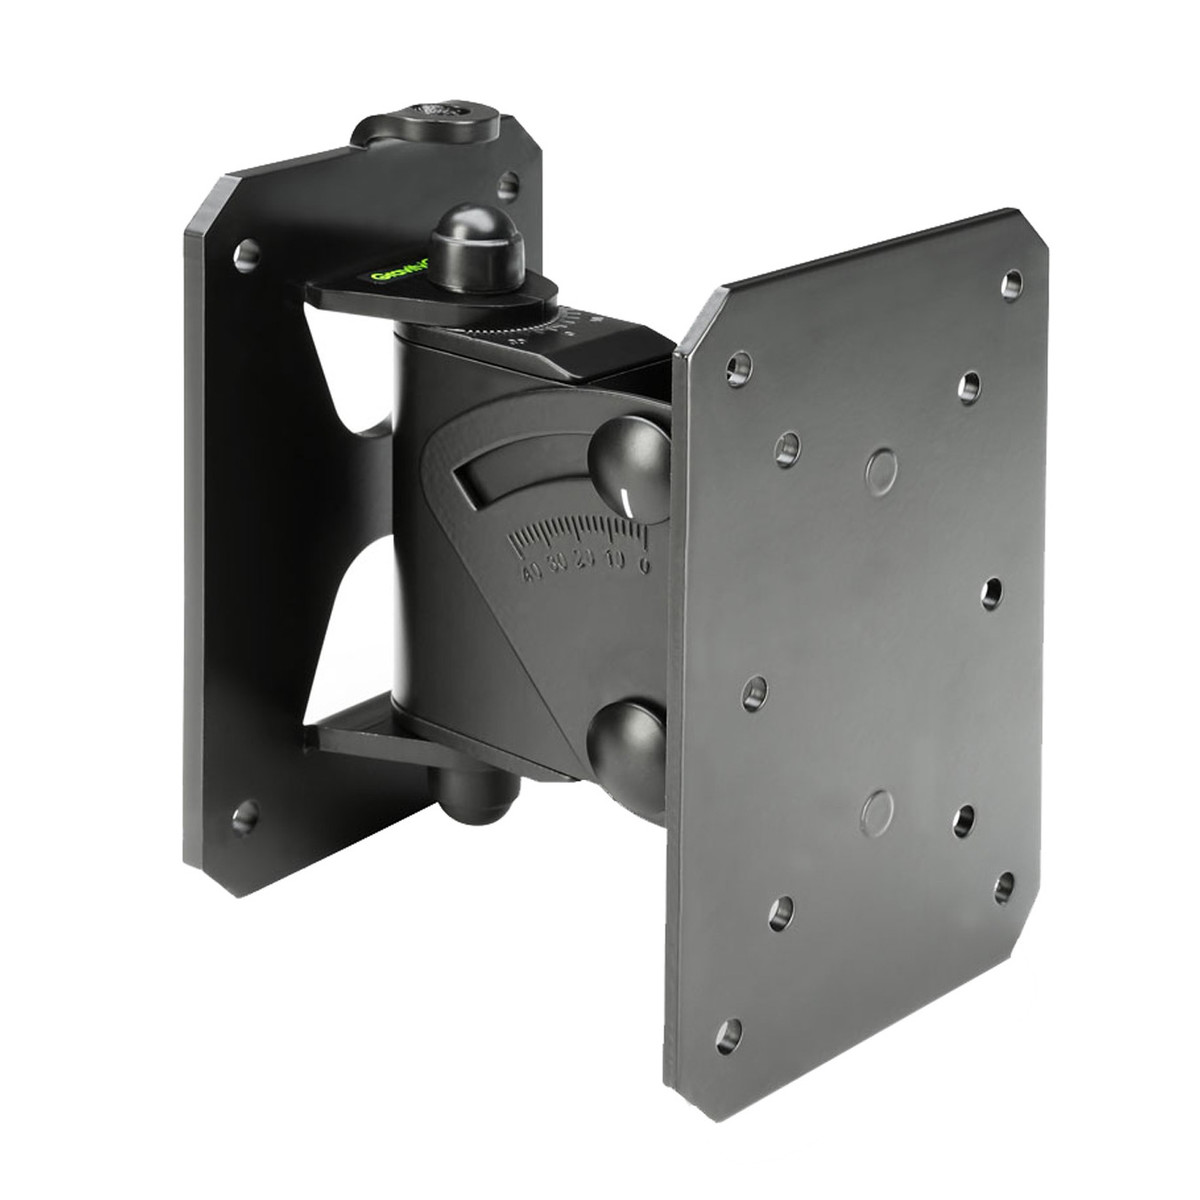 Gravity Gspwmbs20b Tilt And Swivel Speaker Wall Mount